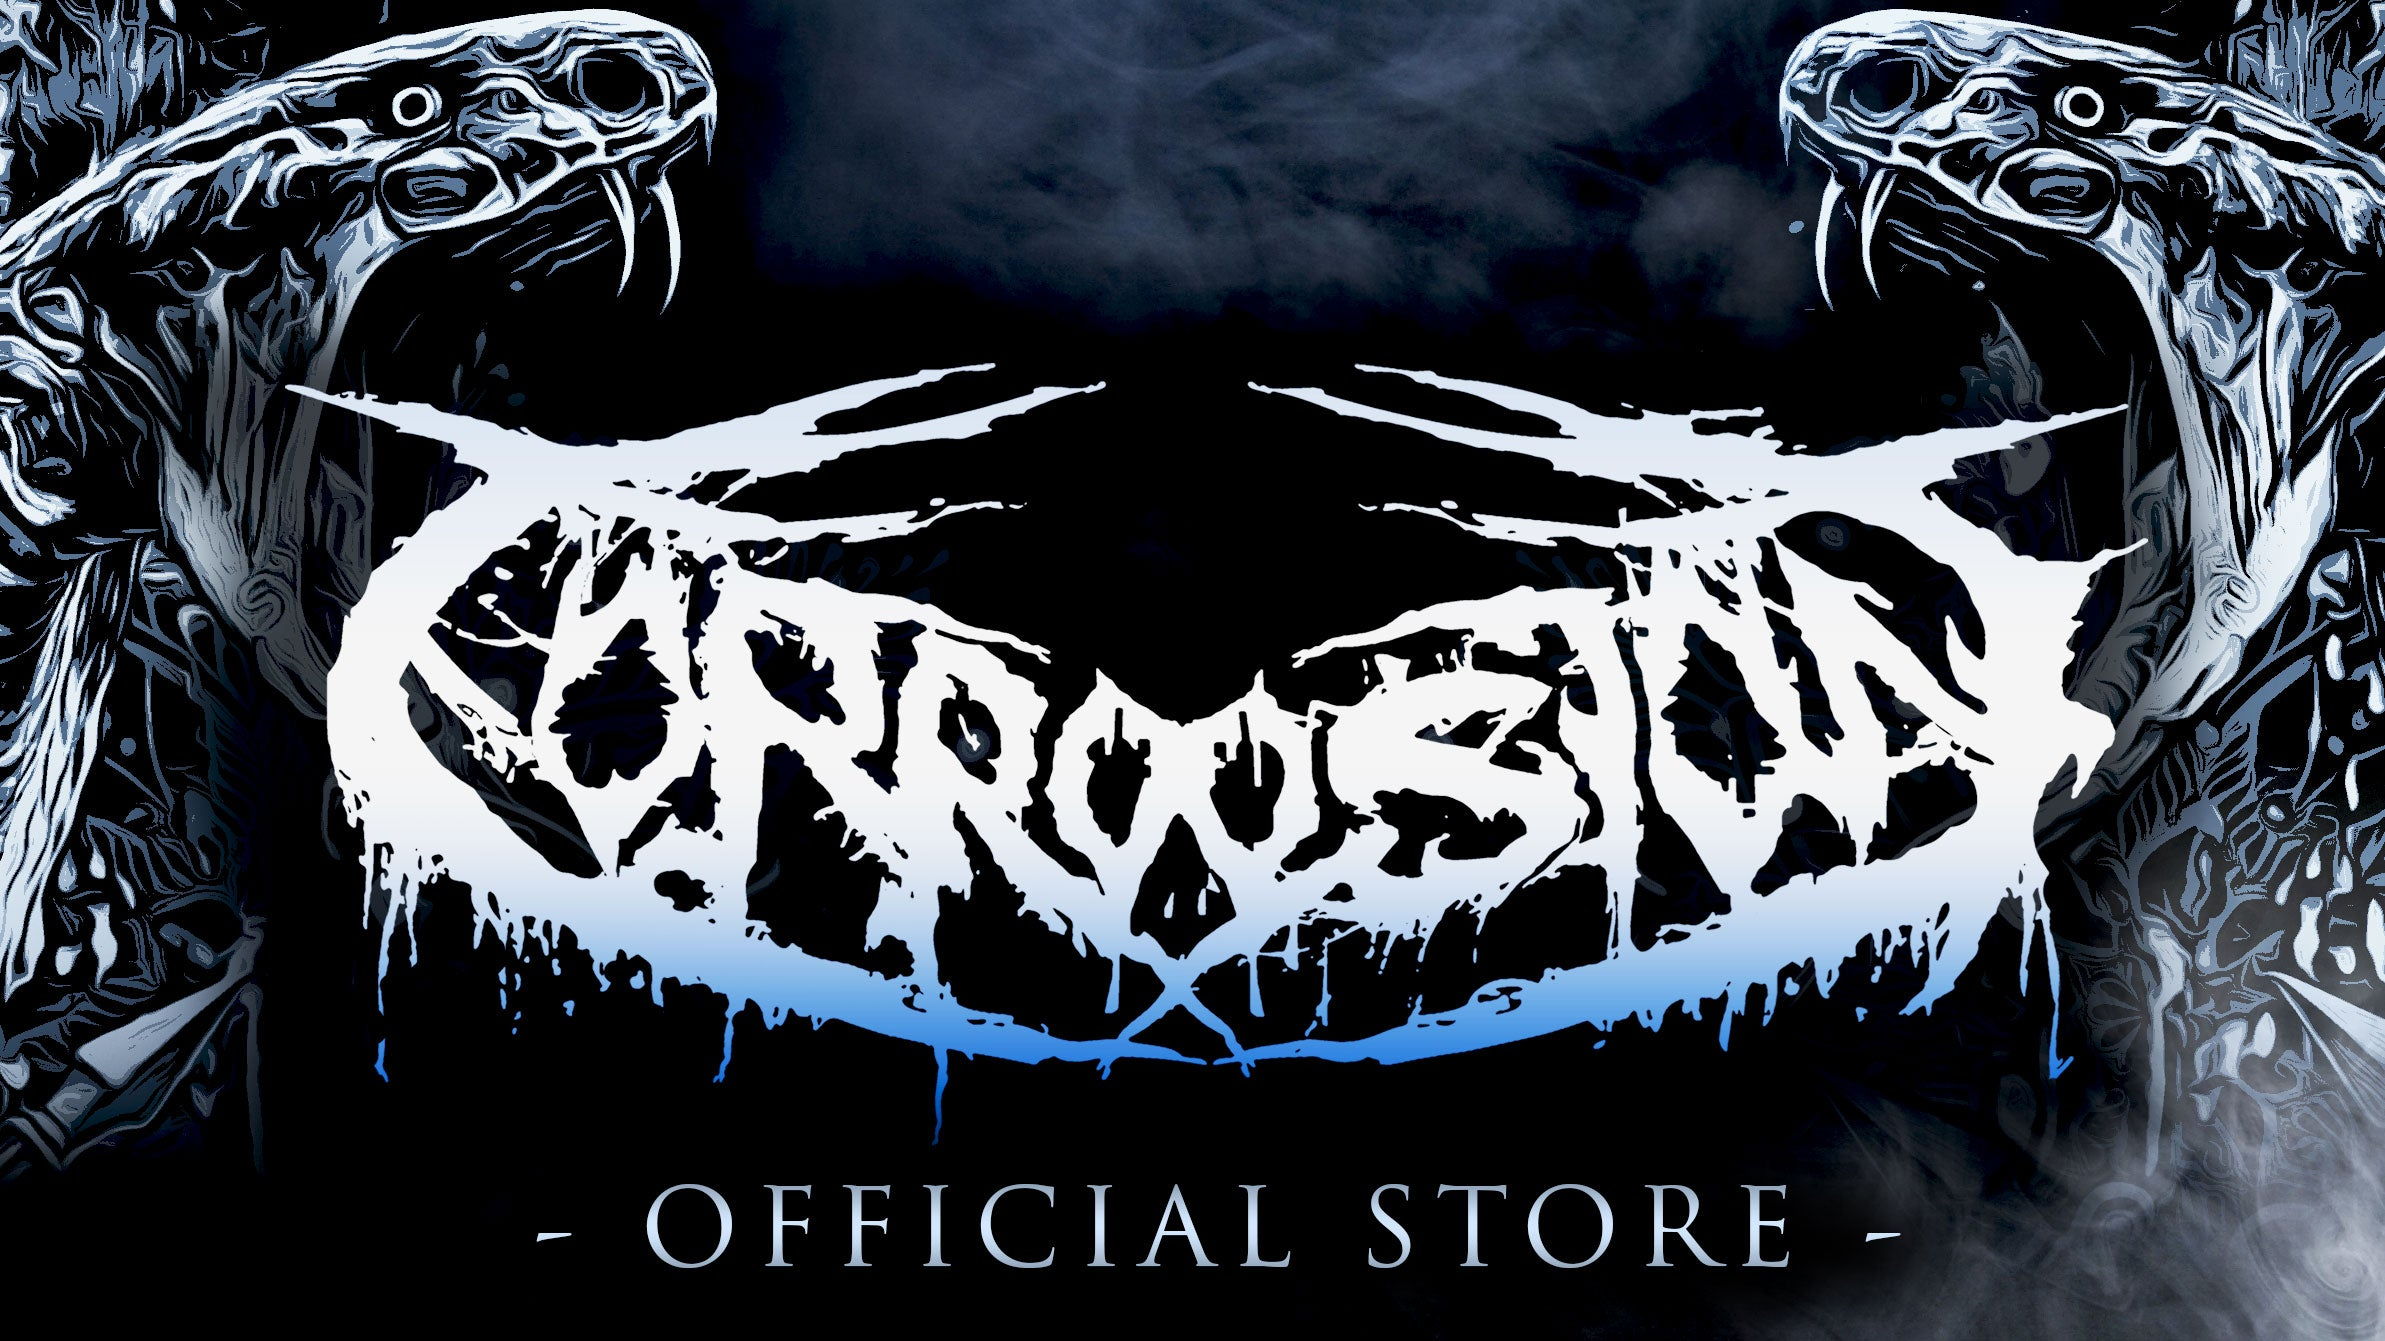 Corroosion Store